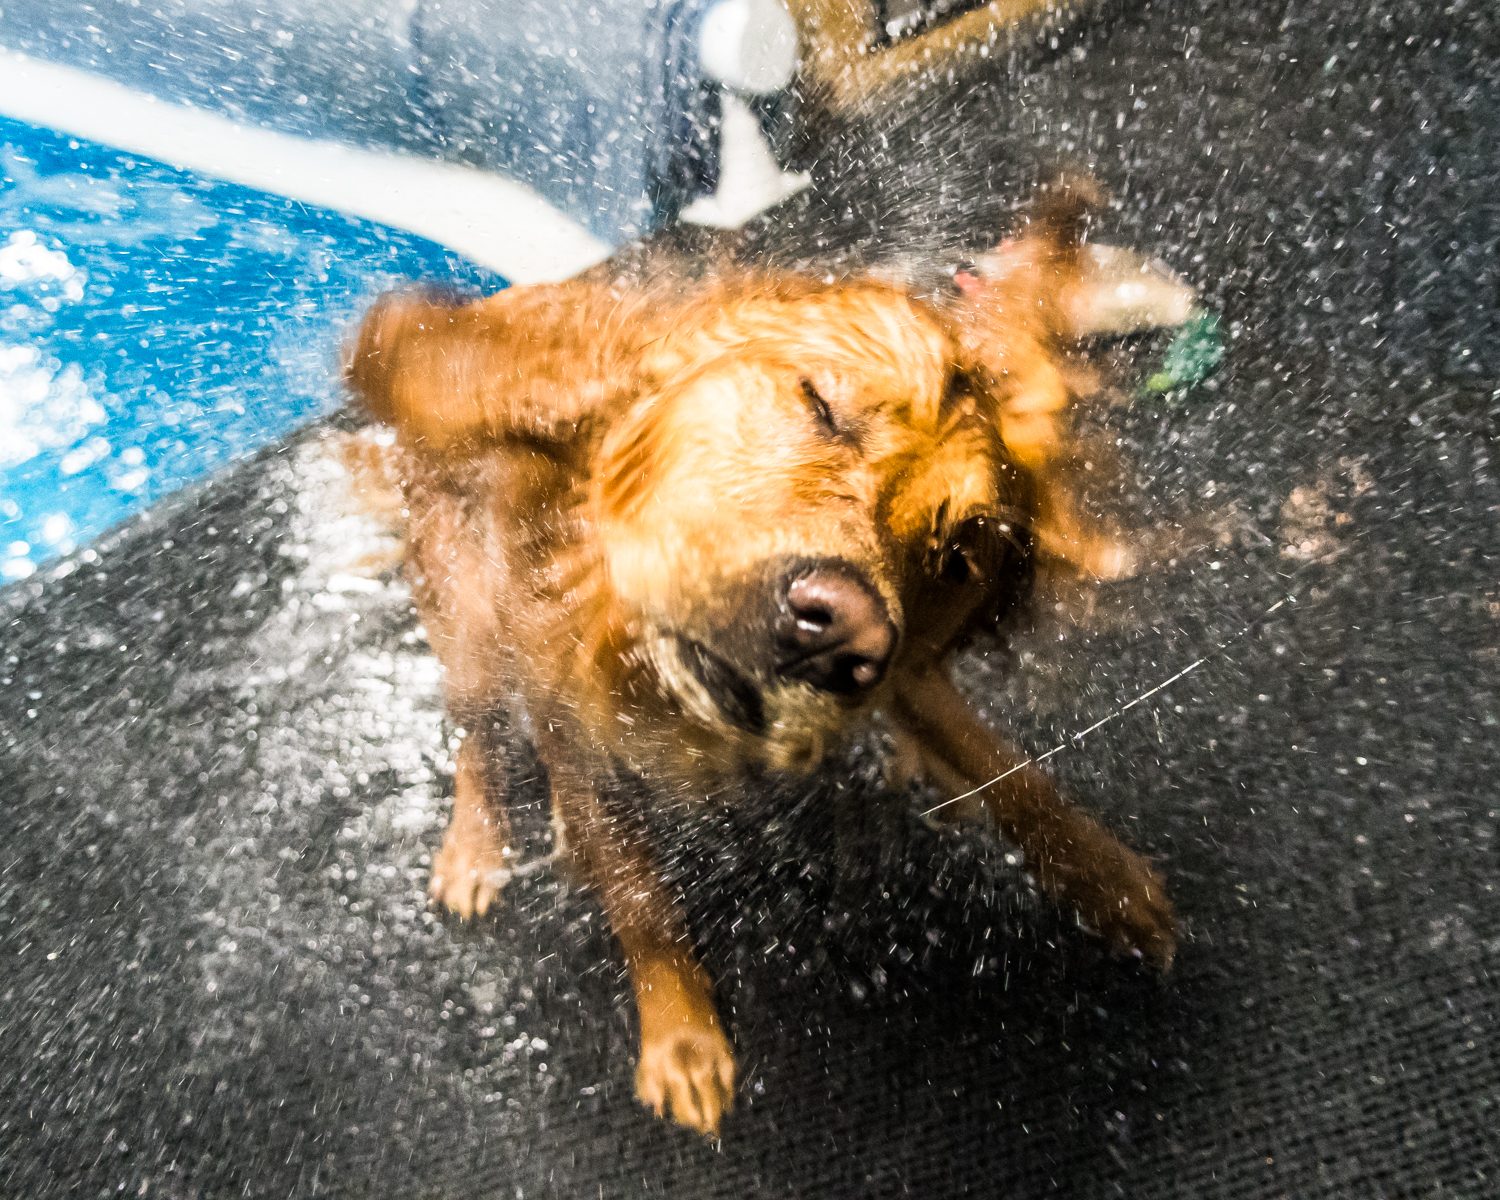 Gunner the golden retriever shakes off the excess water retained by his fur from the Club Aqua Paws pool Thursday afternoon while training hunting retrieval techniques.